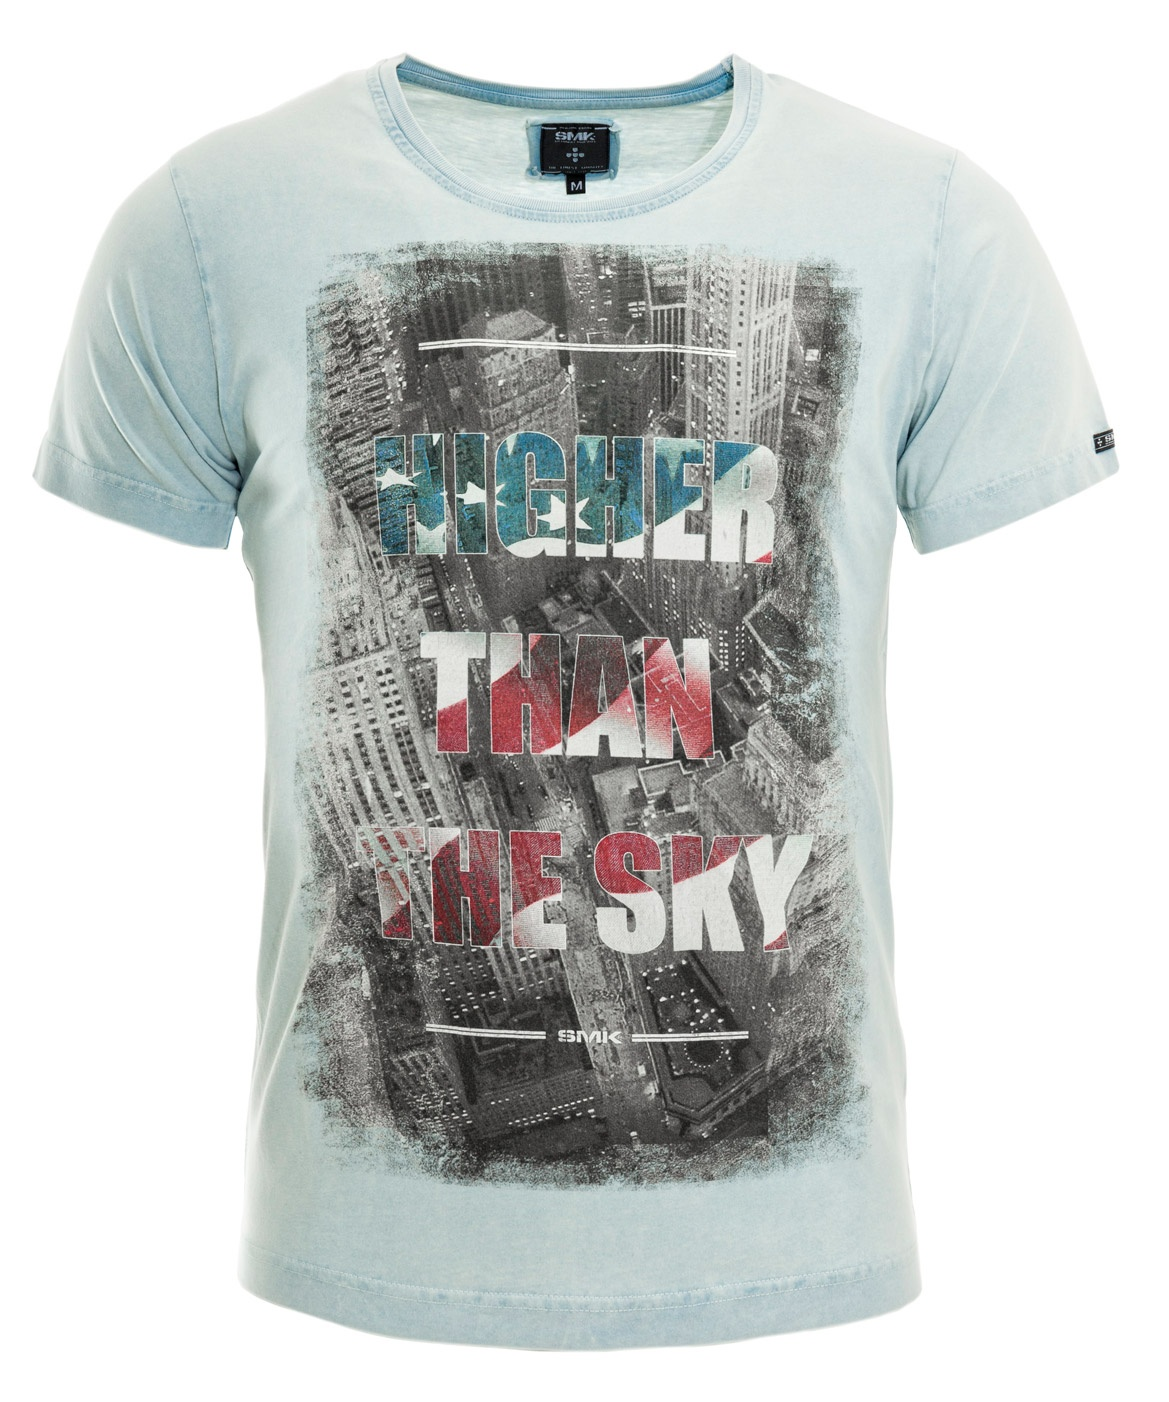 T-SHIRT HIGHER T.T. SKY